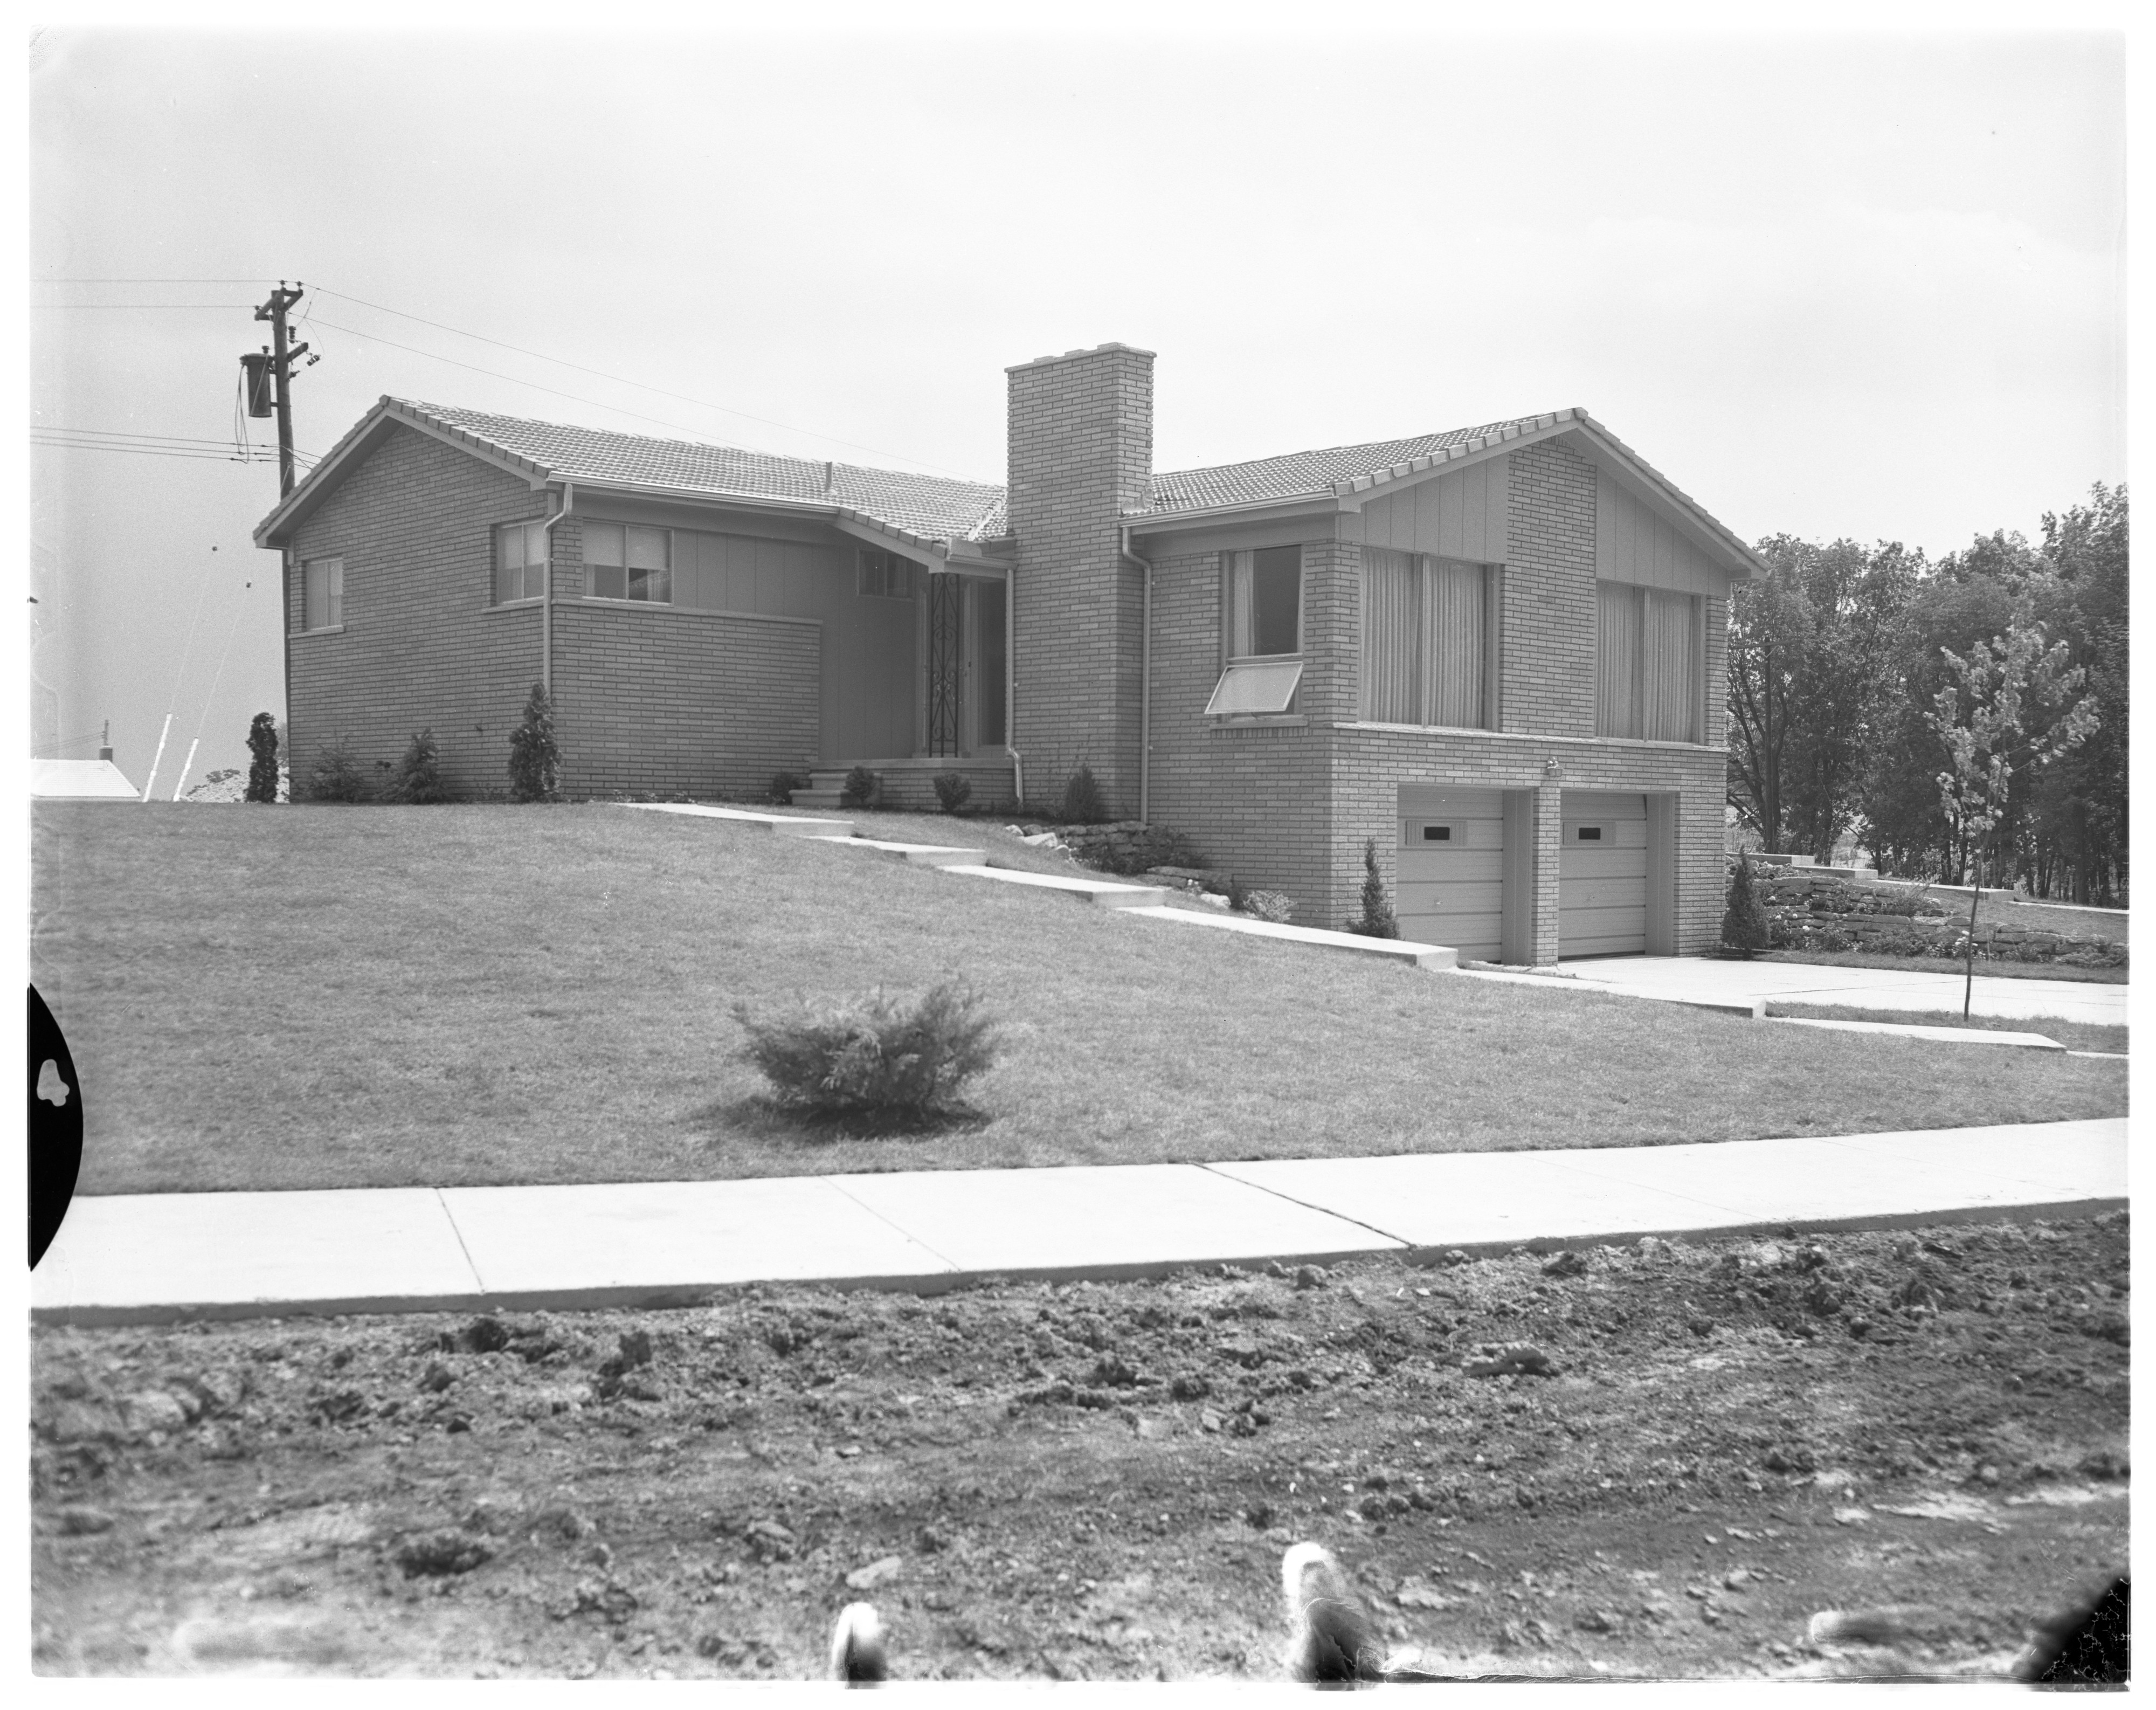 Sapphire Model Home in Ann Arbor Woods Subdivision, June 1957 image